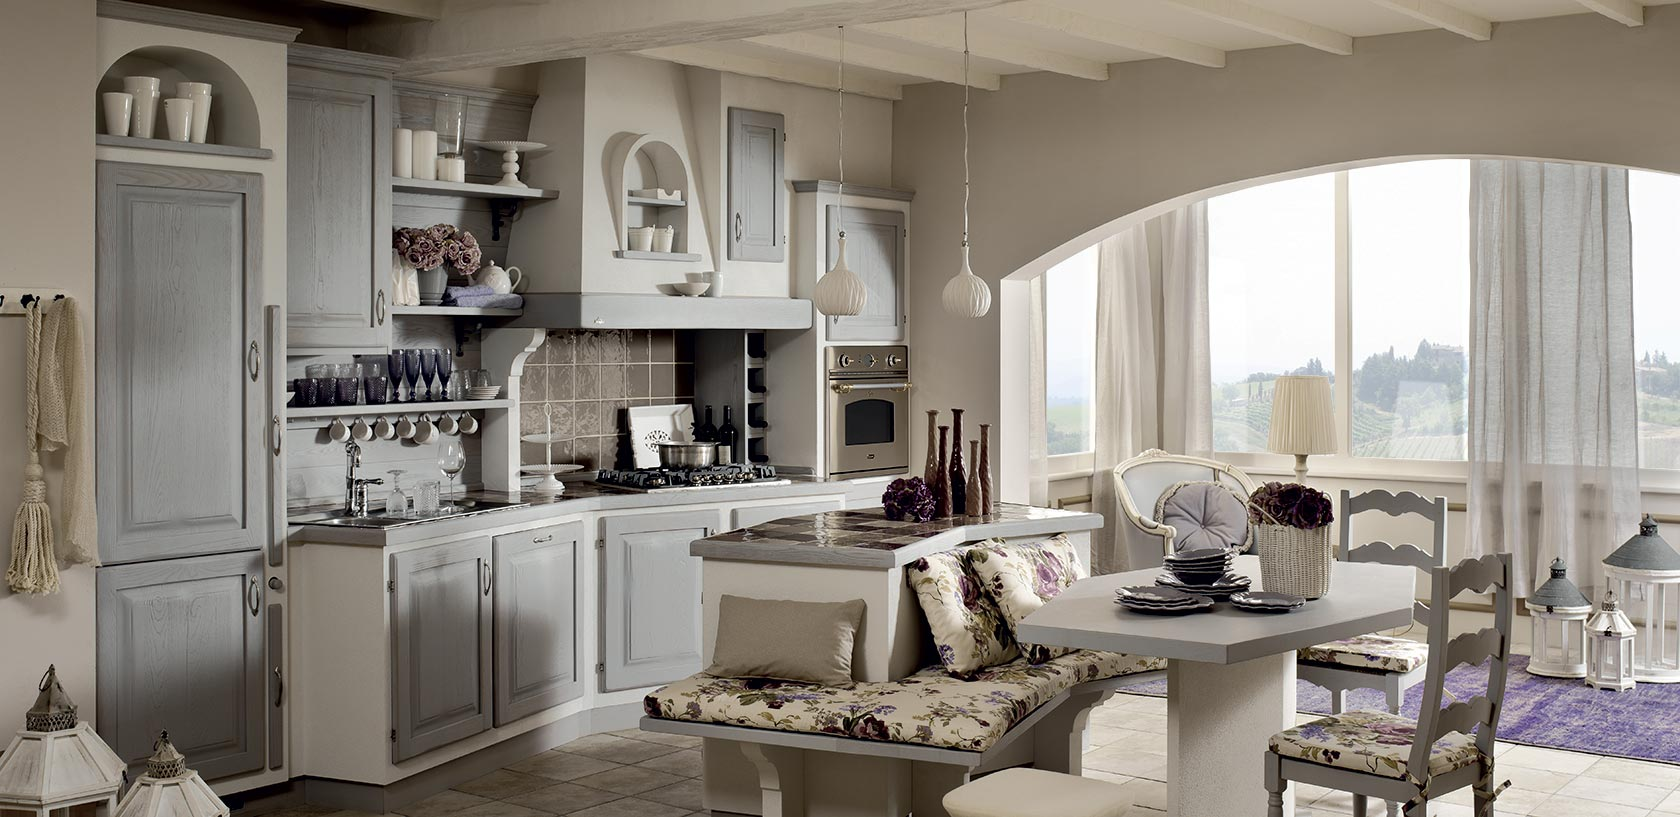 Belle Cucine Moderne. Best With Belle Cucine Moderne. Perfect Cucine ...